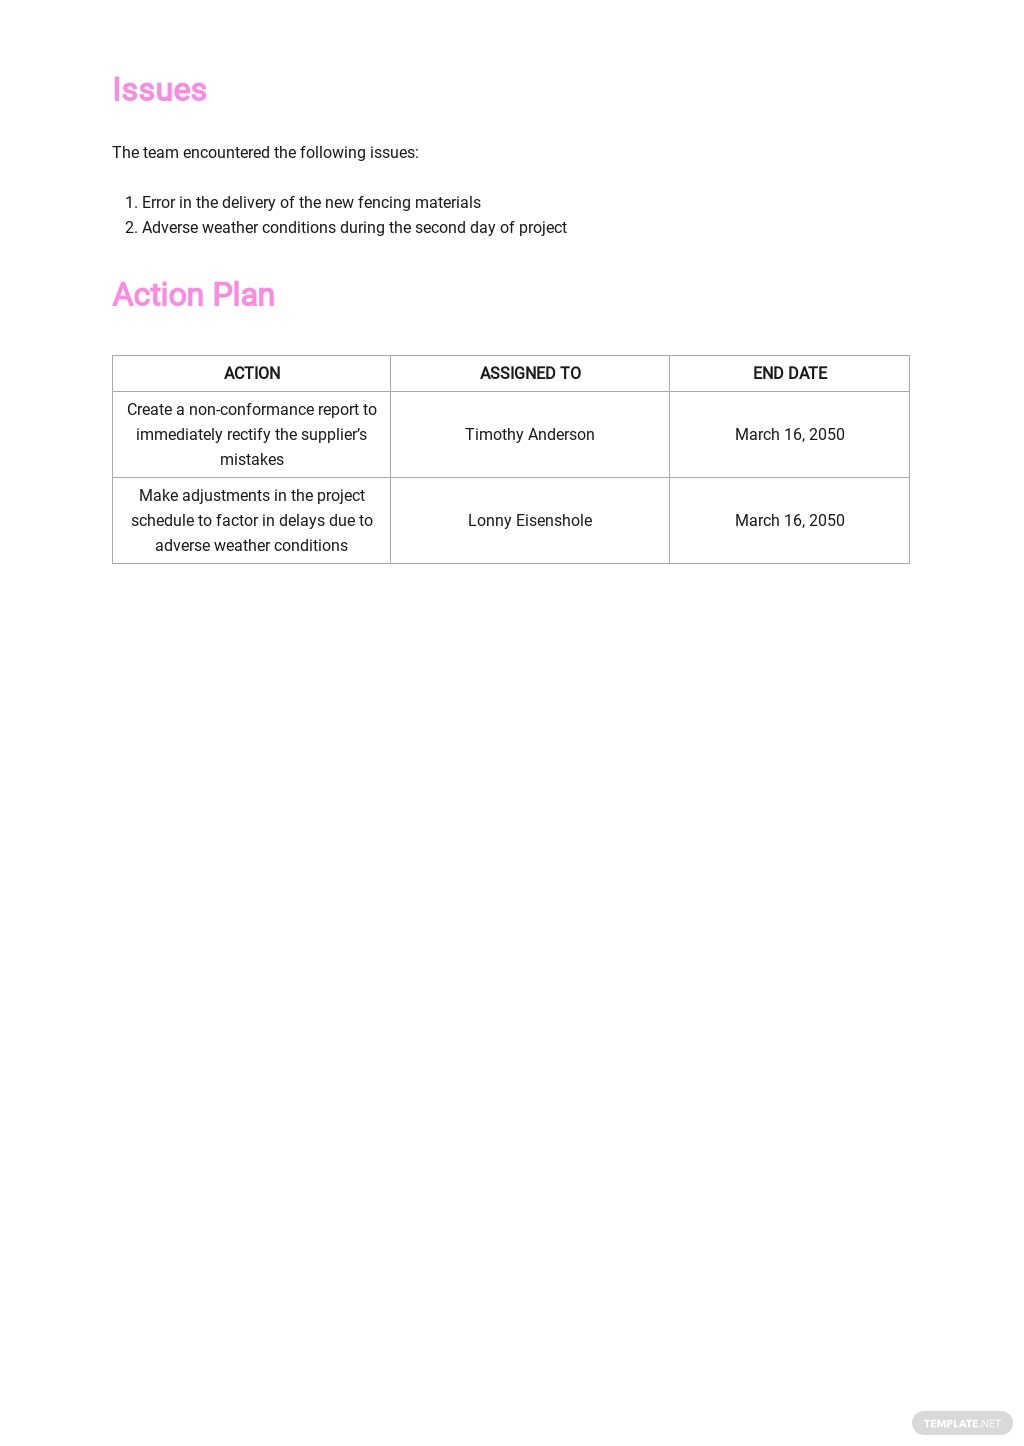 Daily Construction Activities Report Template 3.jpe